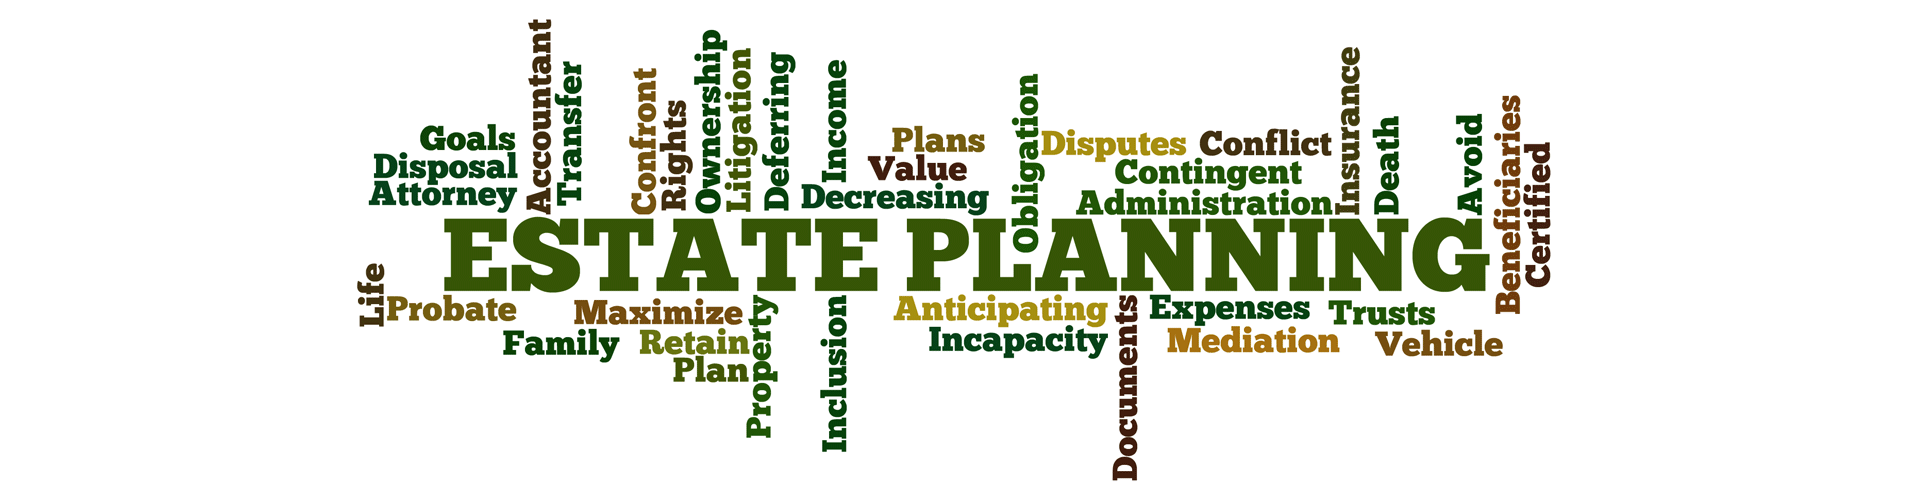 Glossary-of-Estate-Planning-Terms-